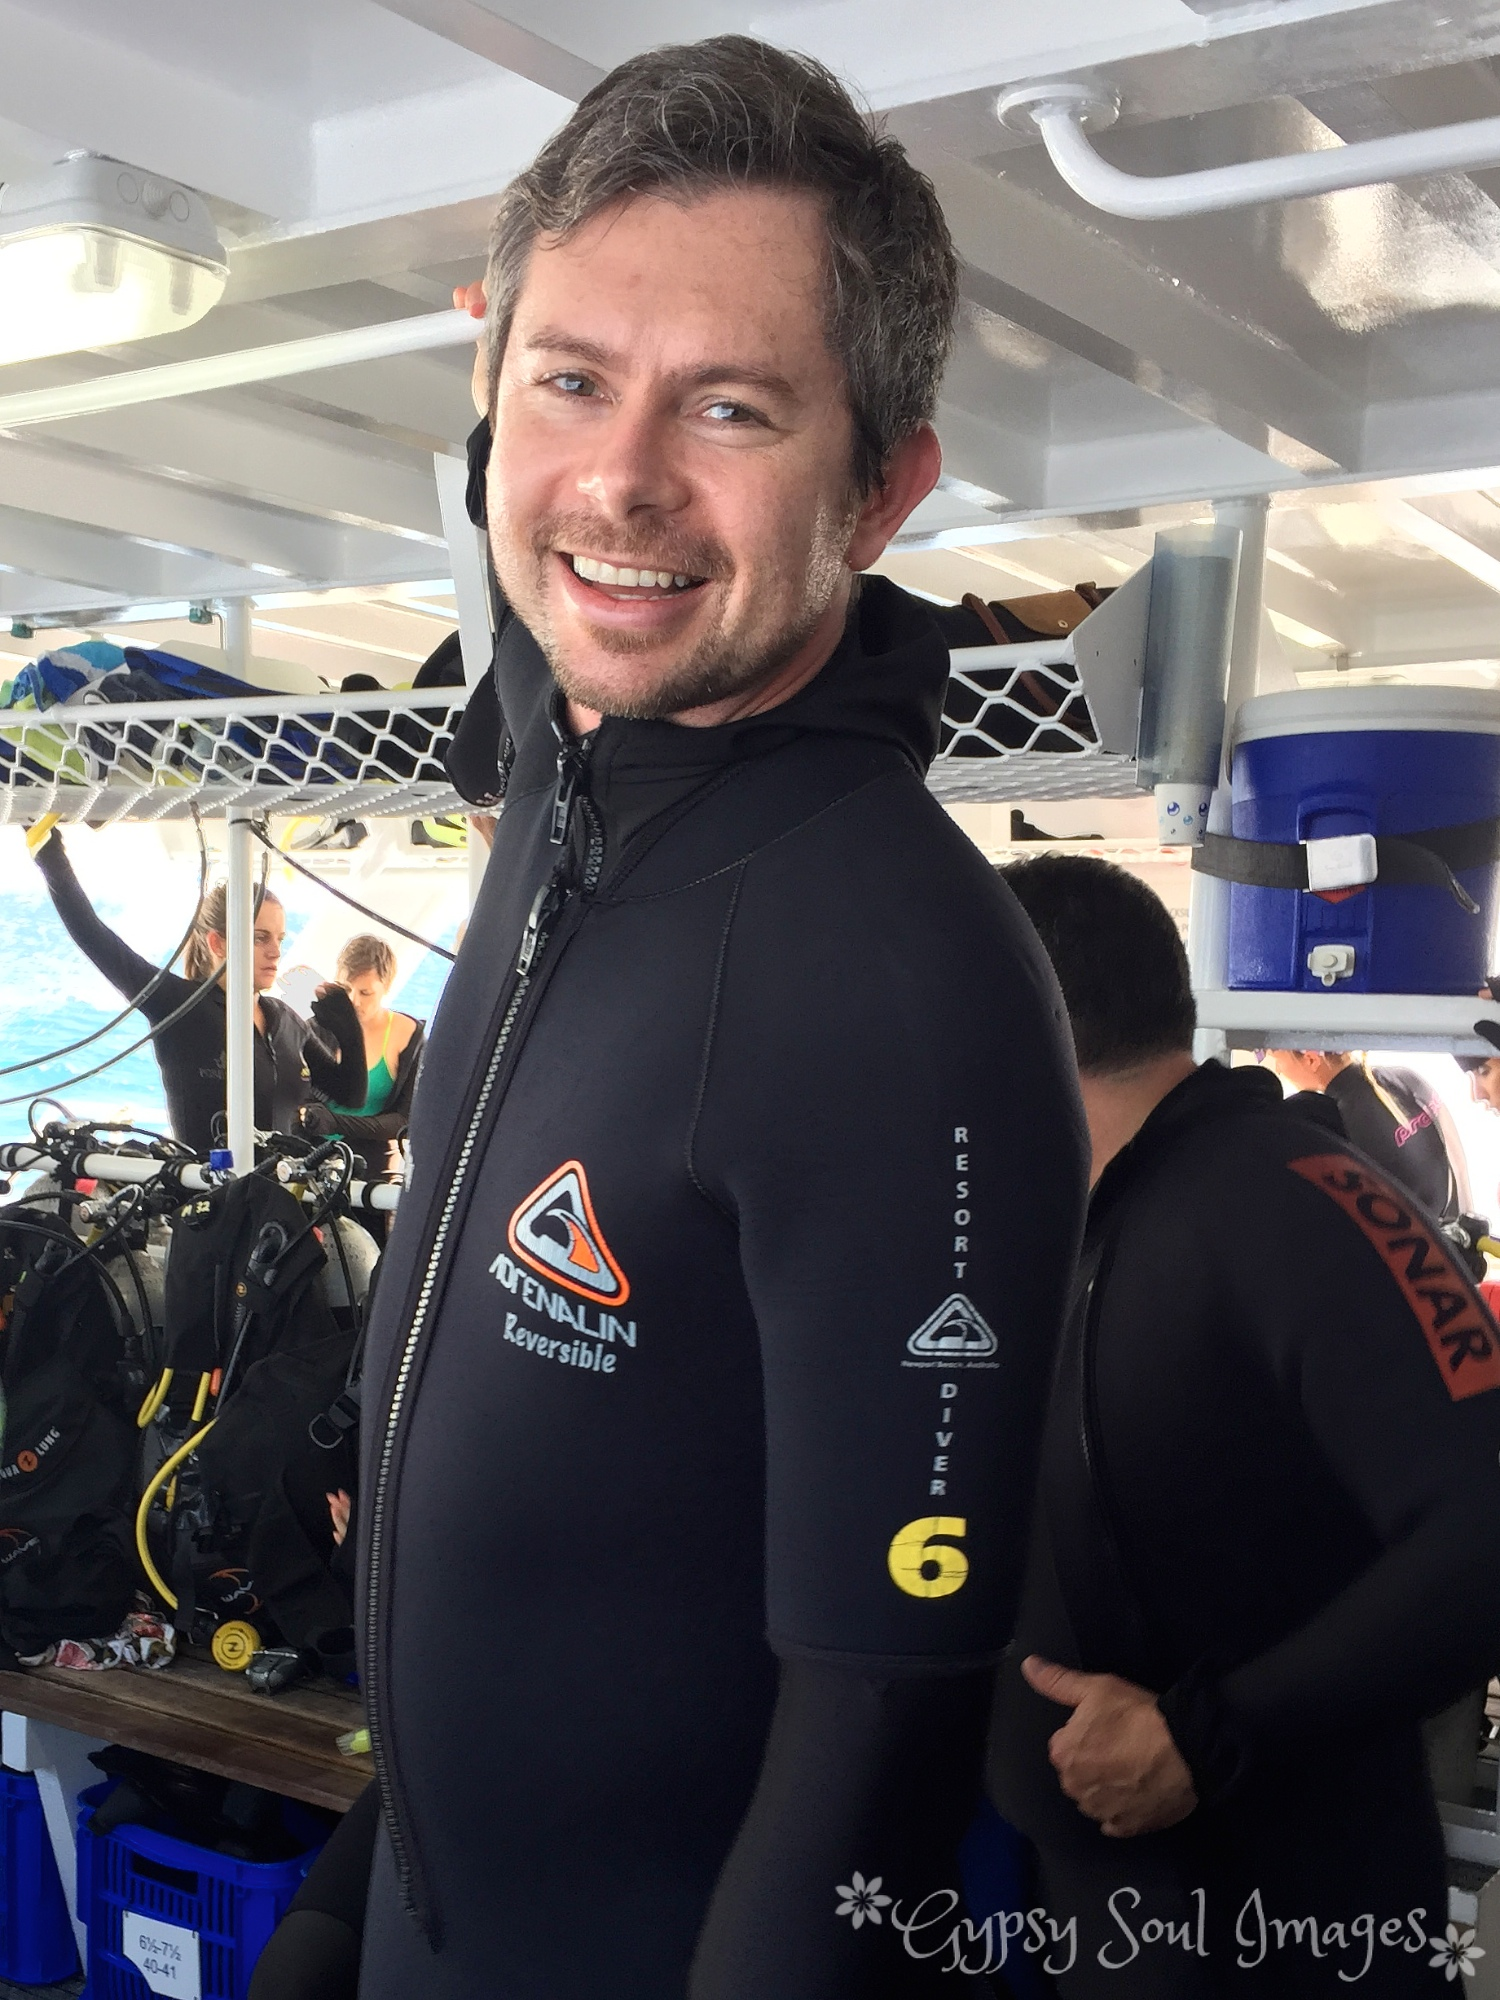 Suited up to dive